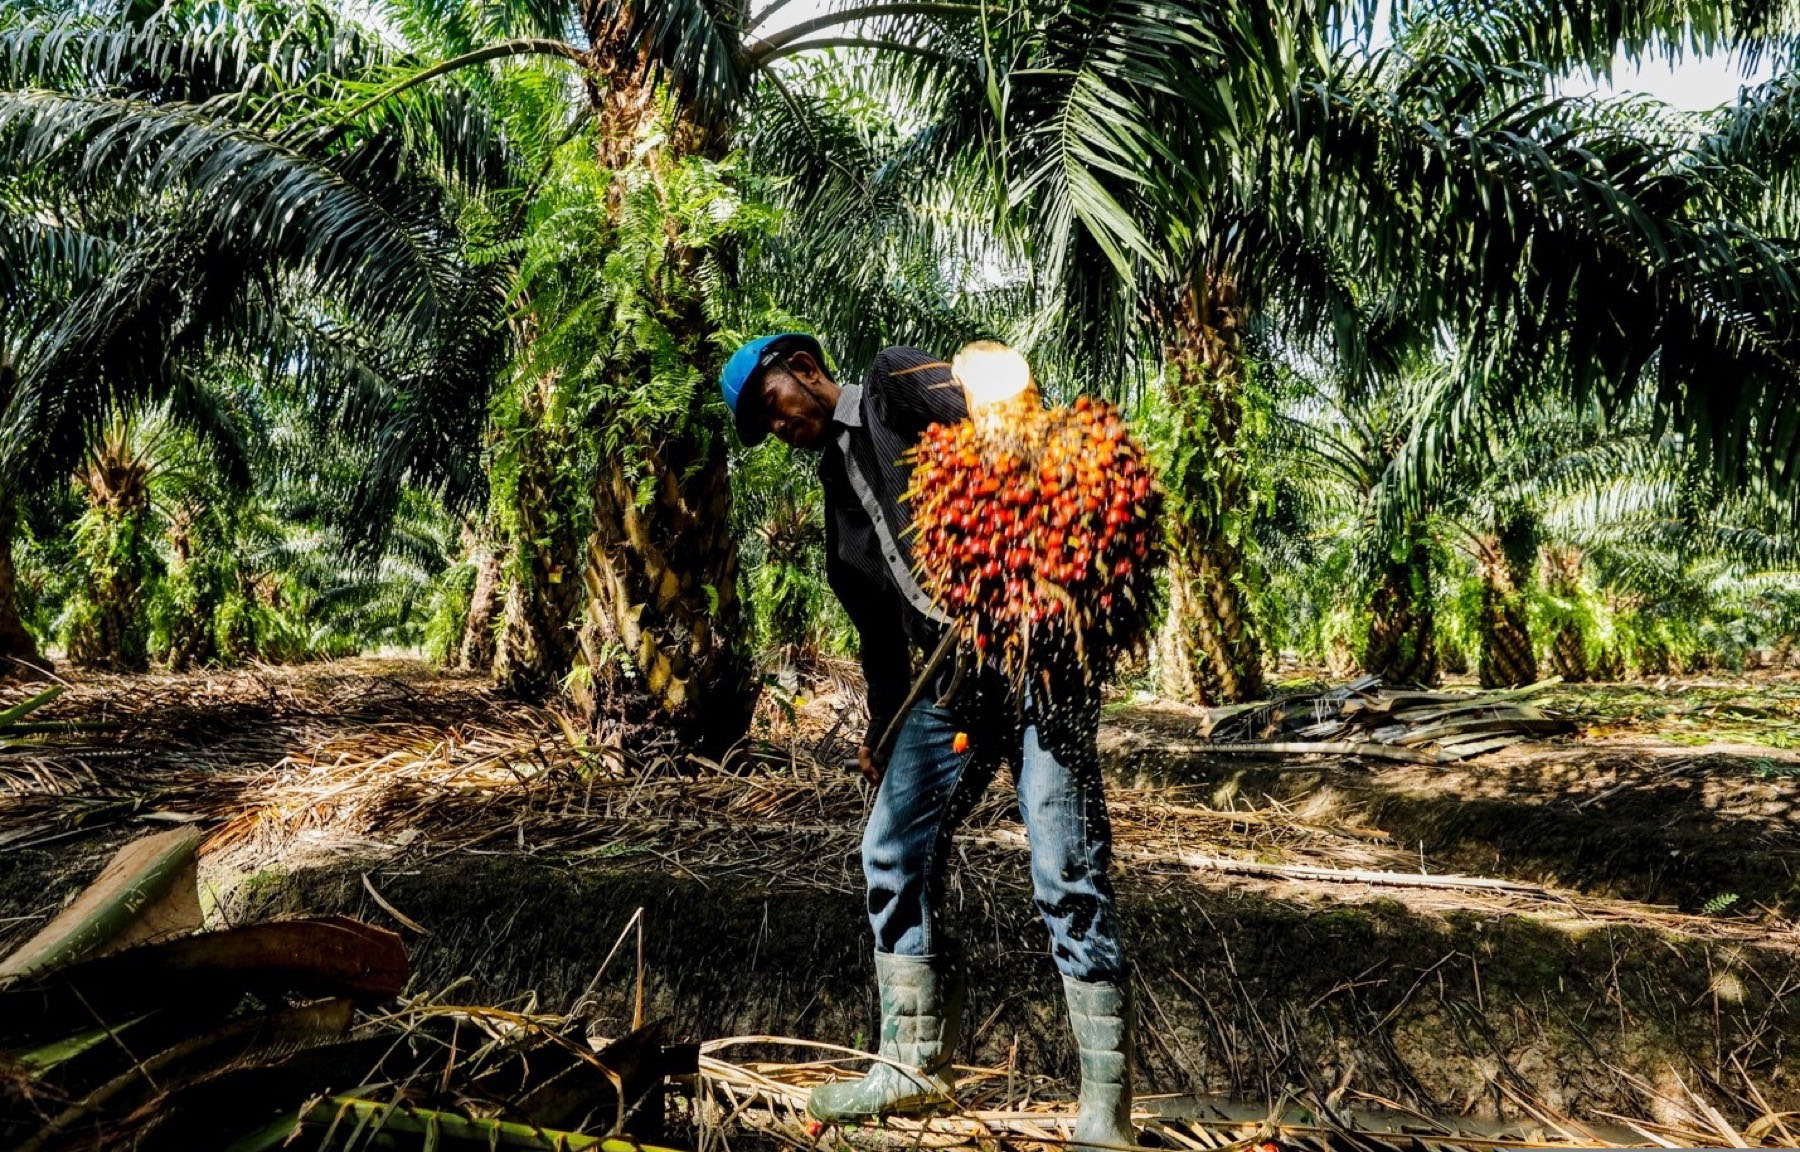 In Thailand, 79% of growers are small farmers. (Photo credit: GIZ Thailand)